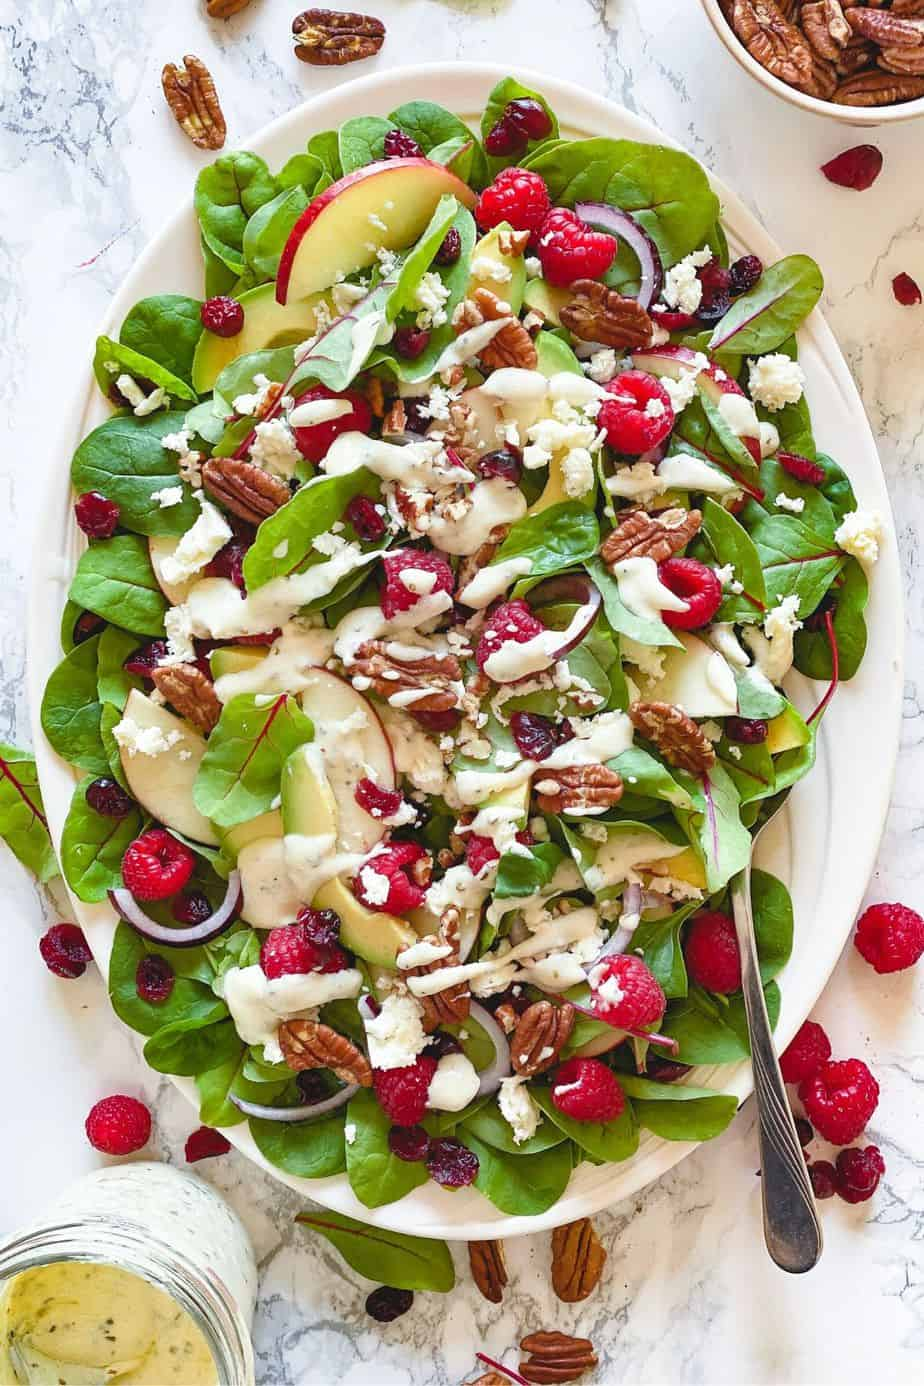 Raspberry, Spinach, and Beet Green Salad - healthy, summer salad recipe loaded with raspberries, pecans, fresh spinach, feta, and beet leaves. This recipe uses just a few ingredients and is simply delicious on its own. But what makes this salad unforgettably delicious is the Creamy Greek Yogurt Herb Dressing. - The Yummy Bowl